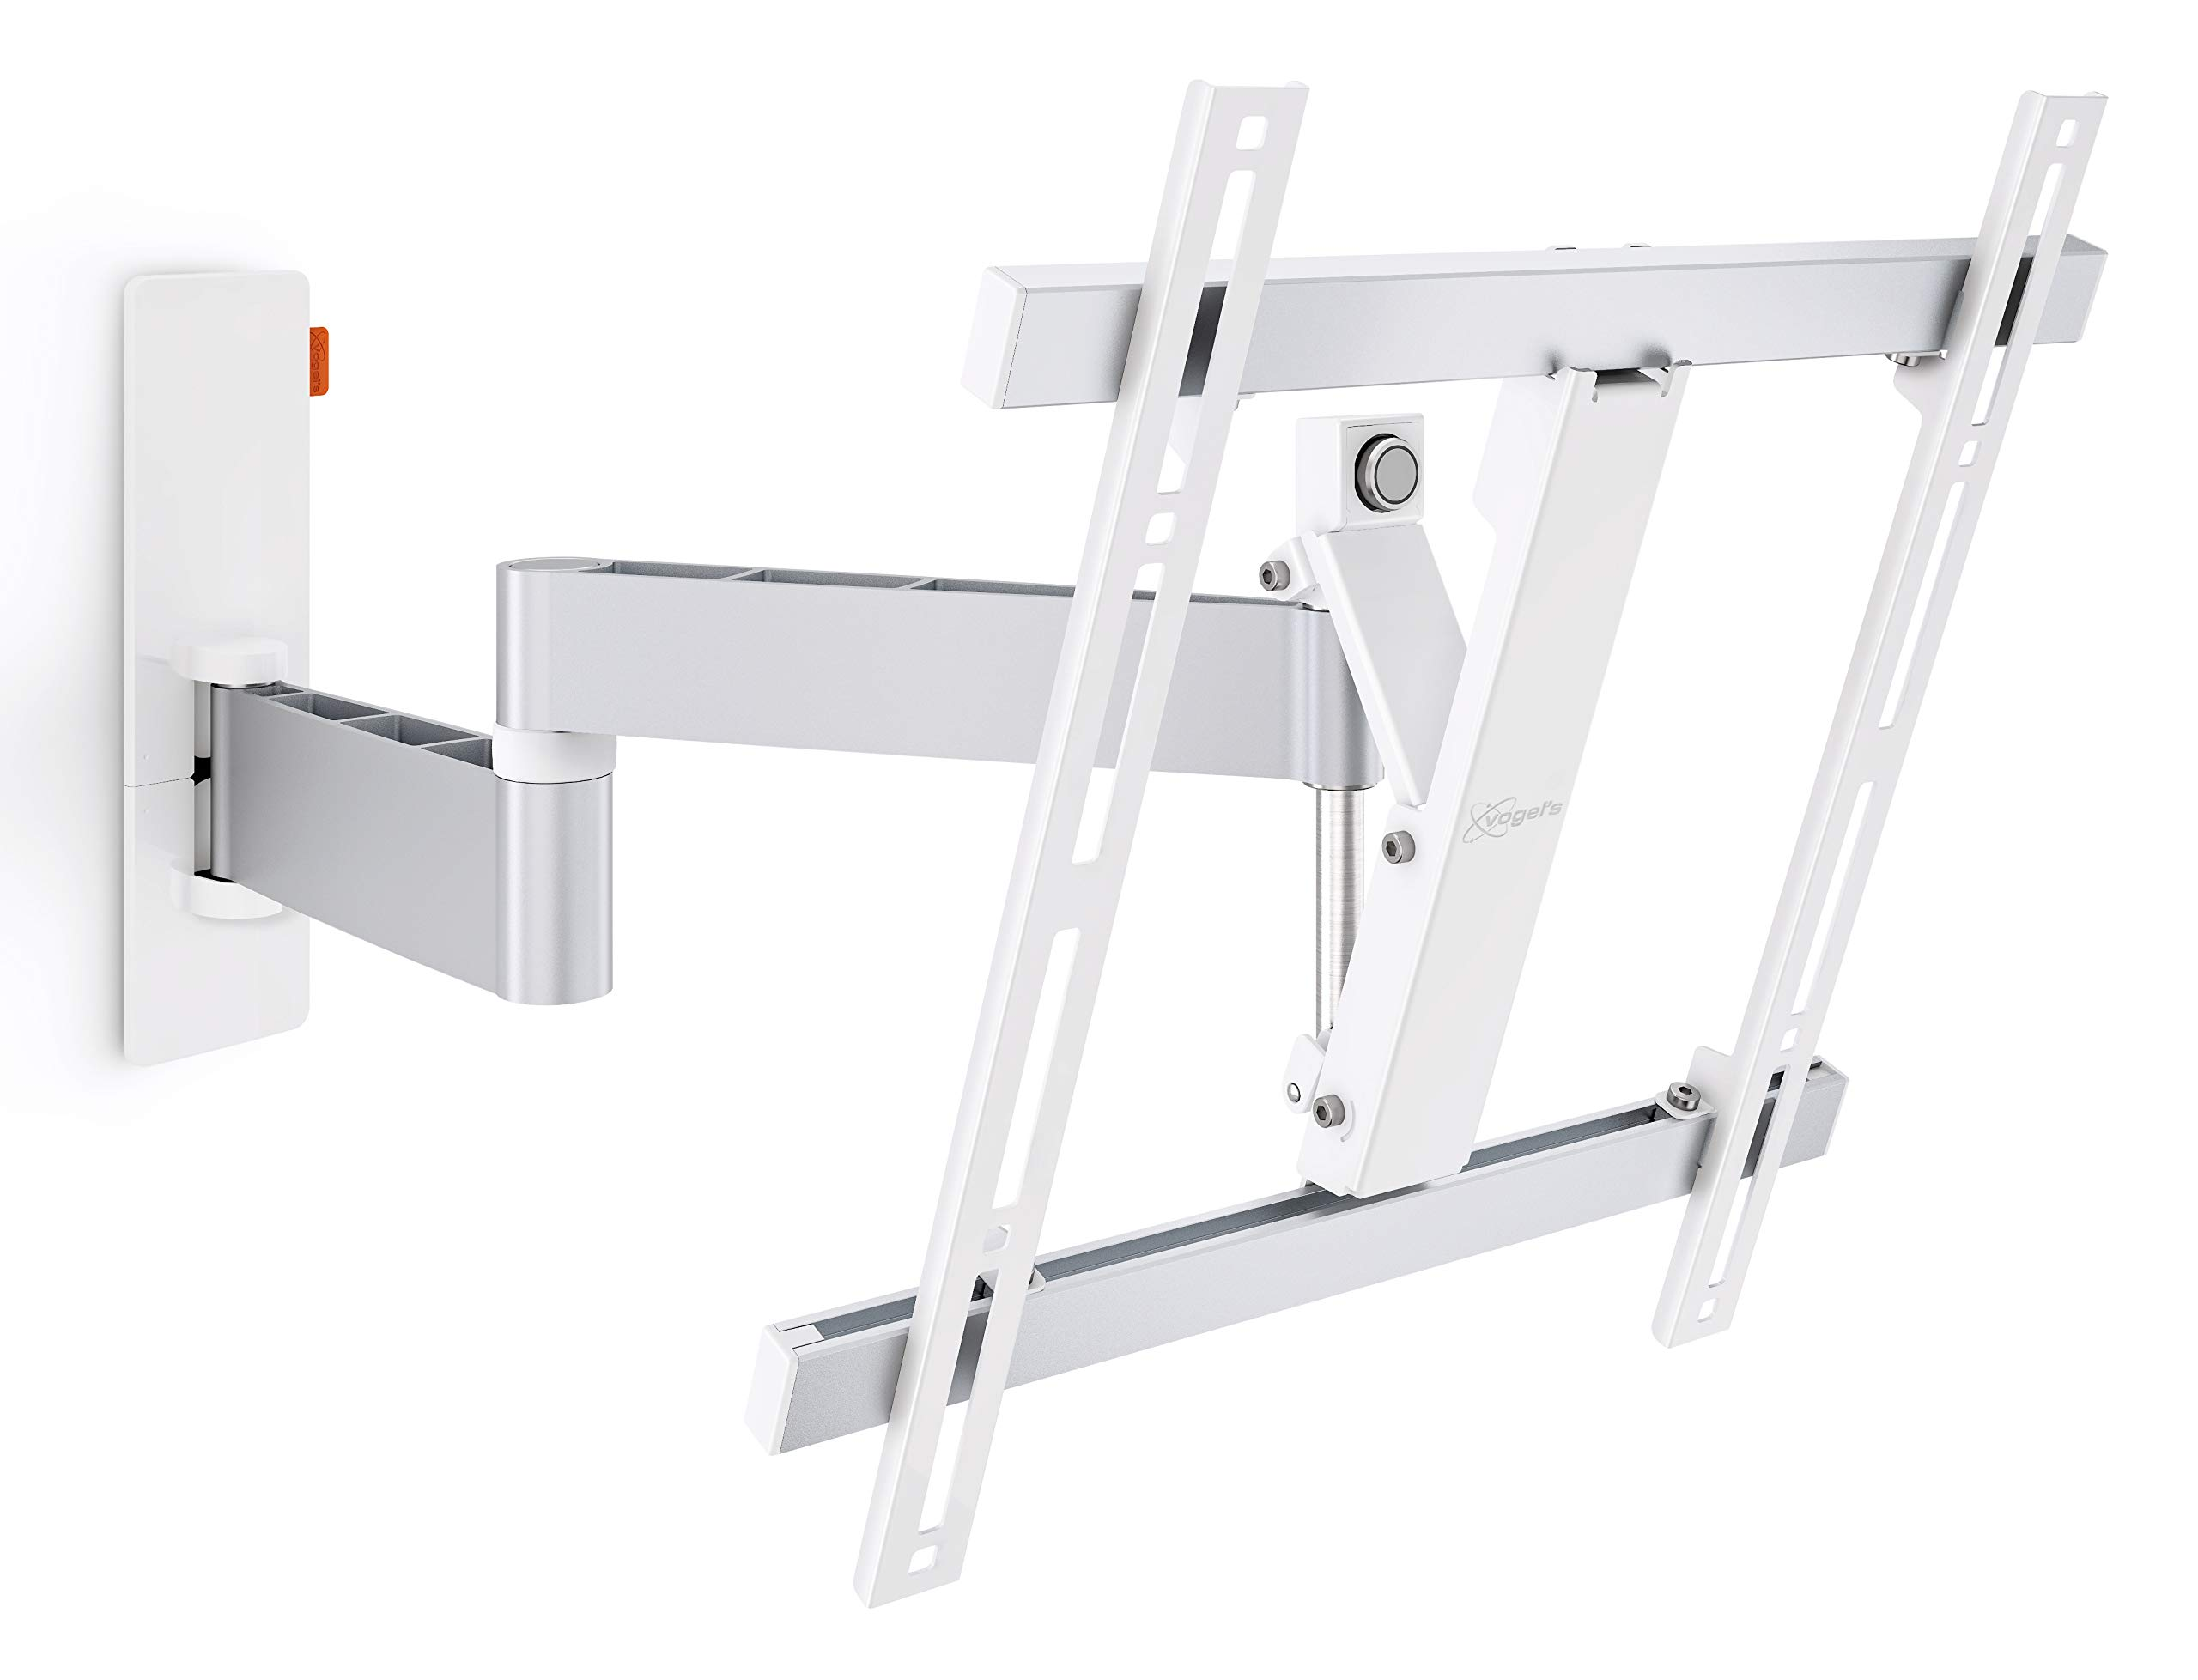 Vogels Wall 3245W Blanco, Soporte de Pared para TV 32: Vogels: Amazon.es: Electrónica